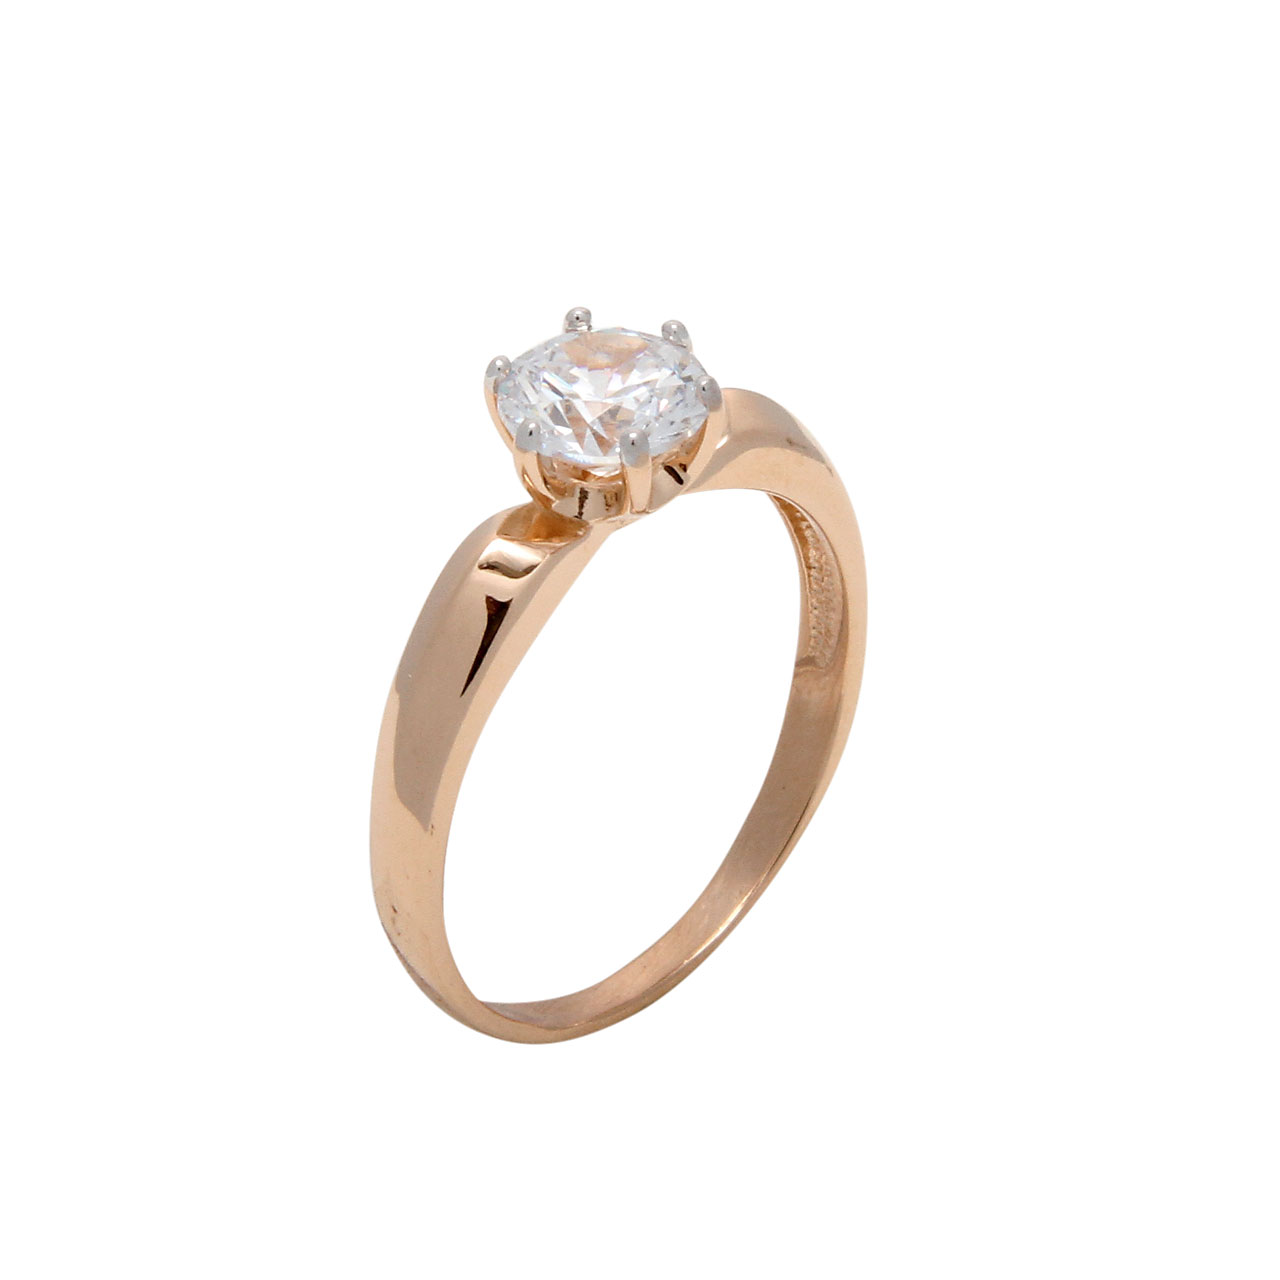 Russian gold CZ engagement ring 1